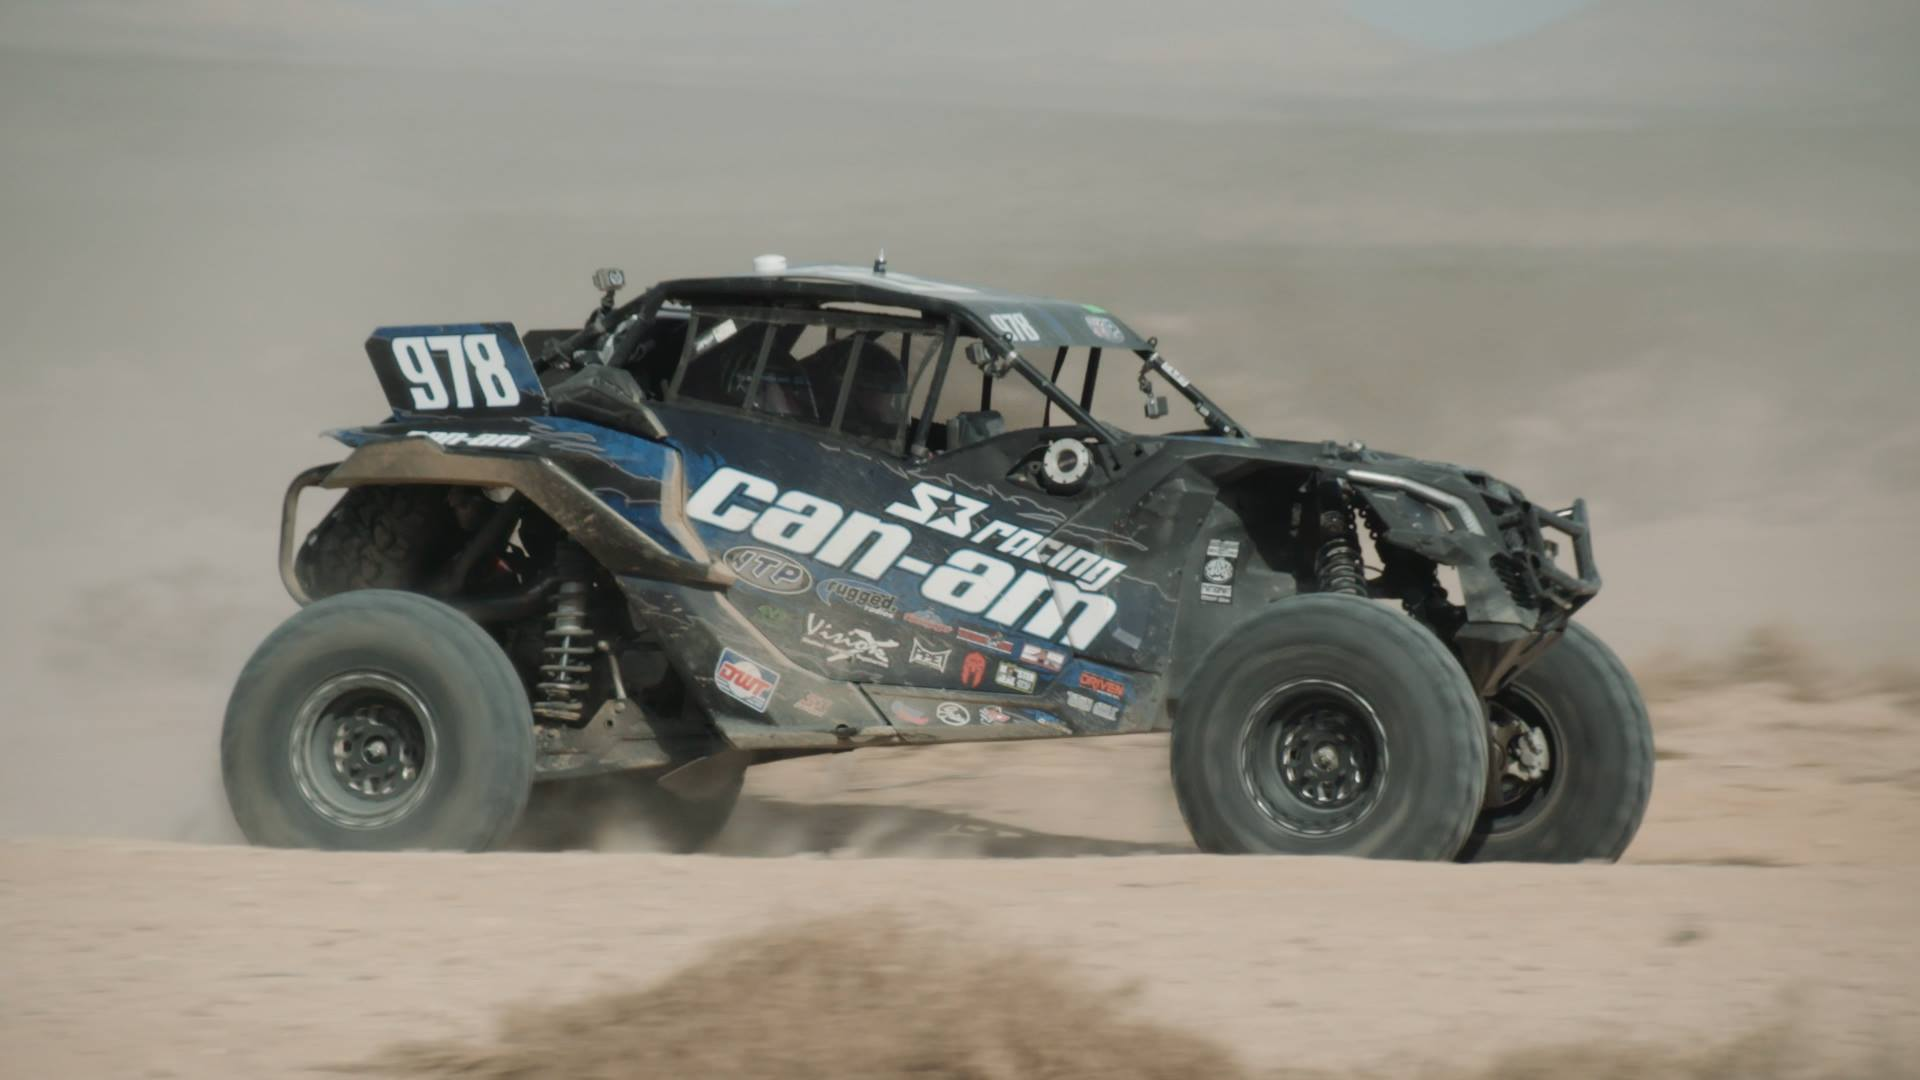 2017 Mint 400 Race Report from S3 Racing - UTV Guide